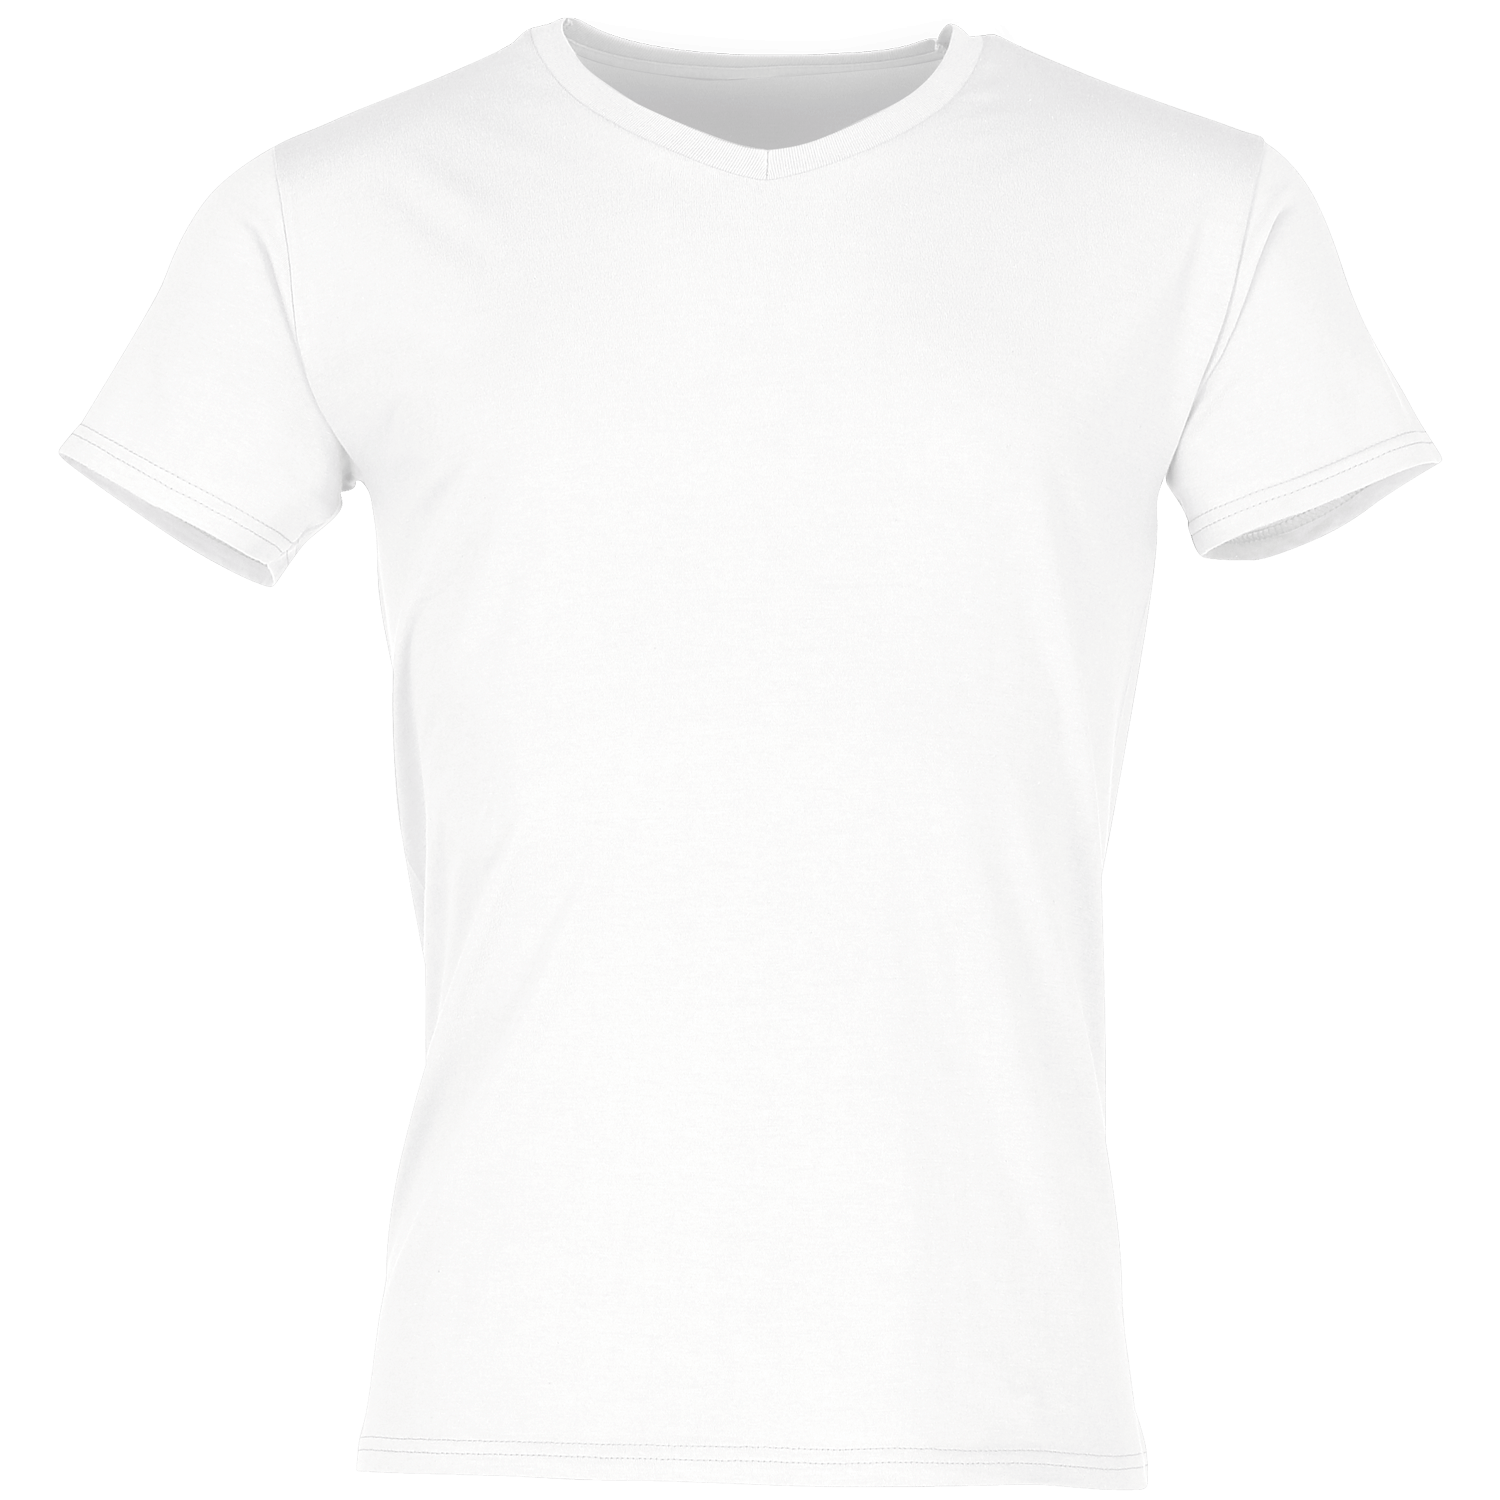 Iconic 150 V-Neck T-Shirt